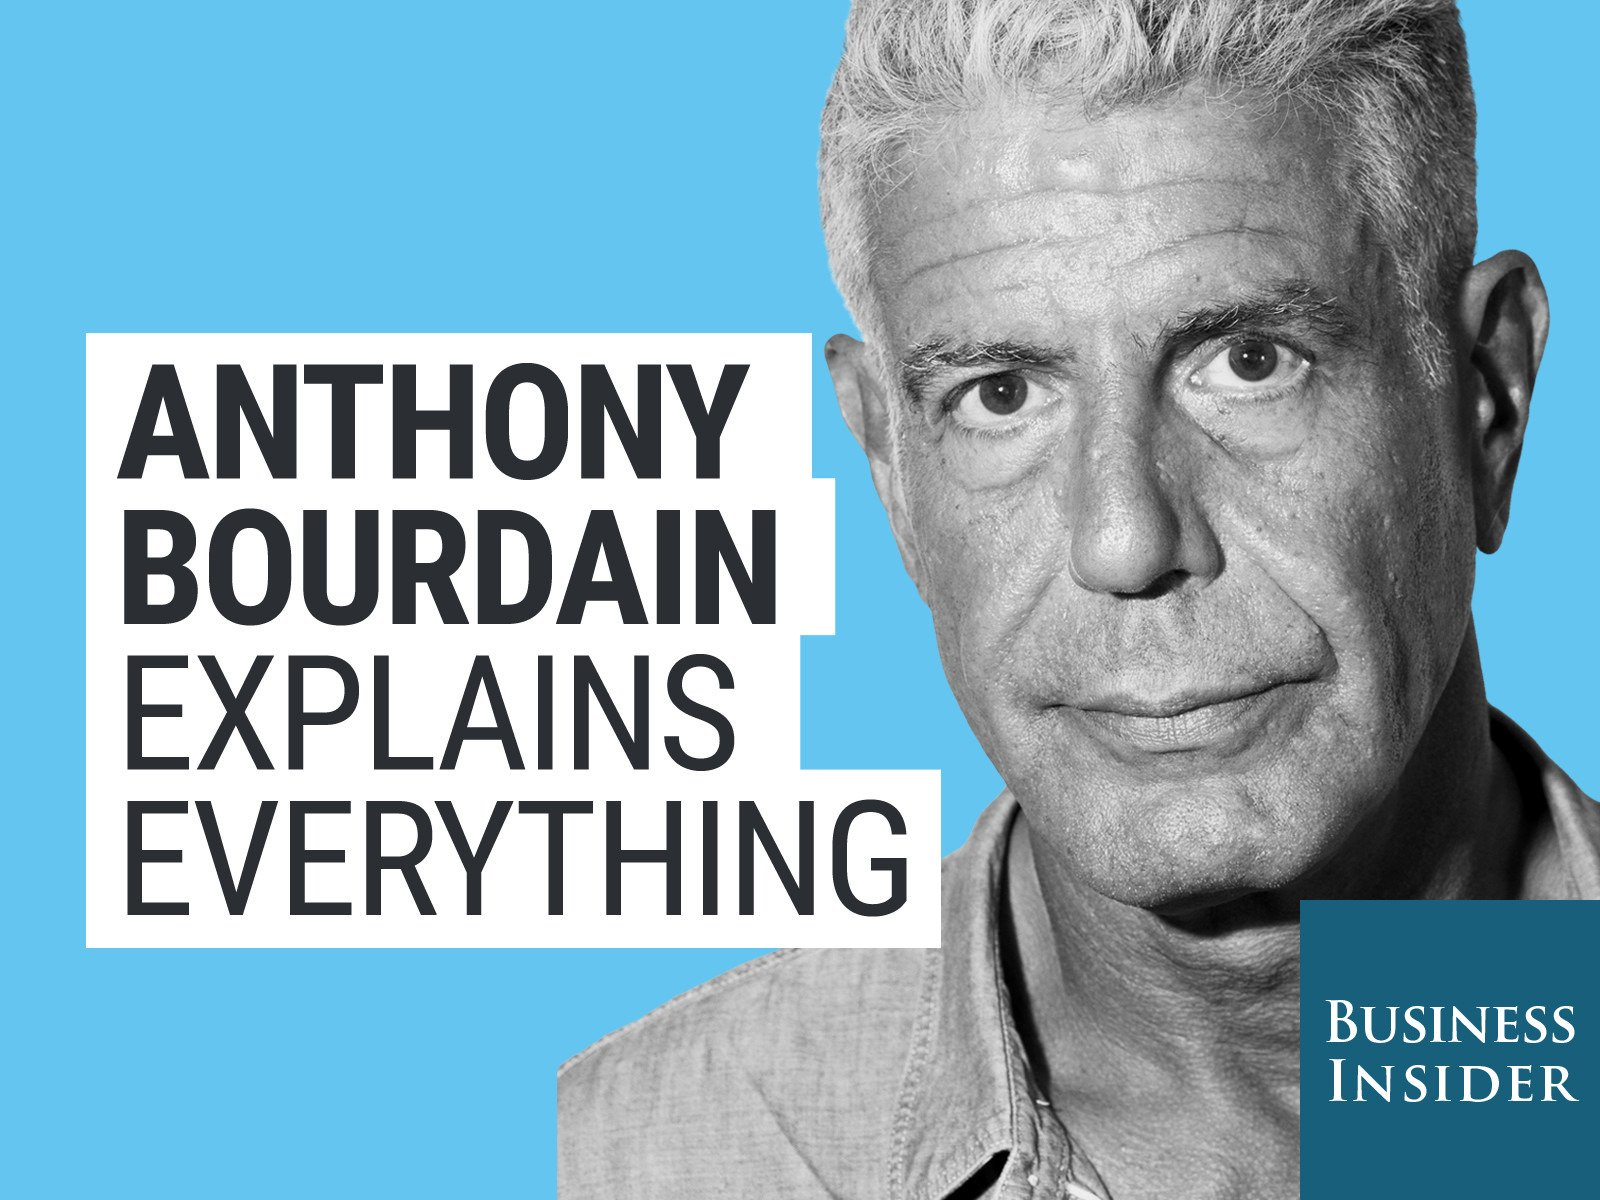 Anthony Bourdain Explains Everything - Season 1